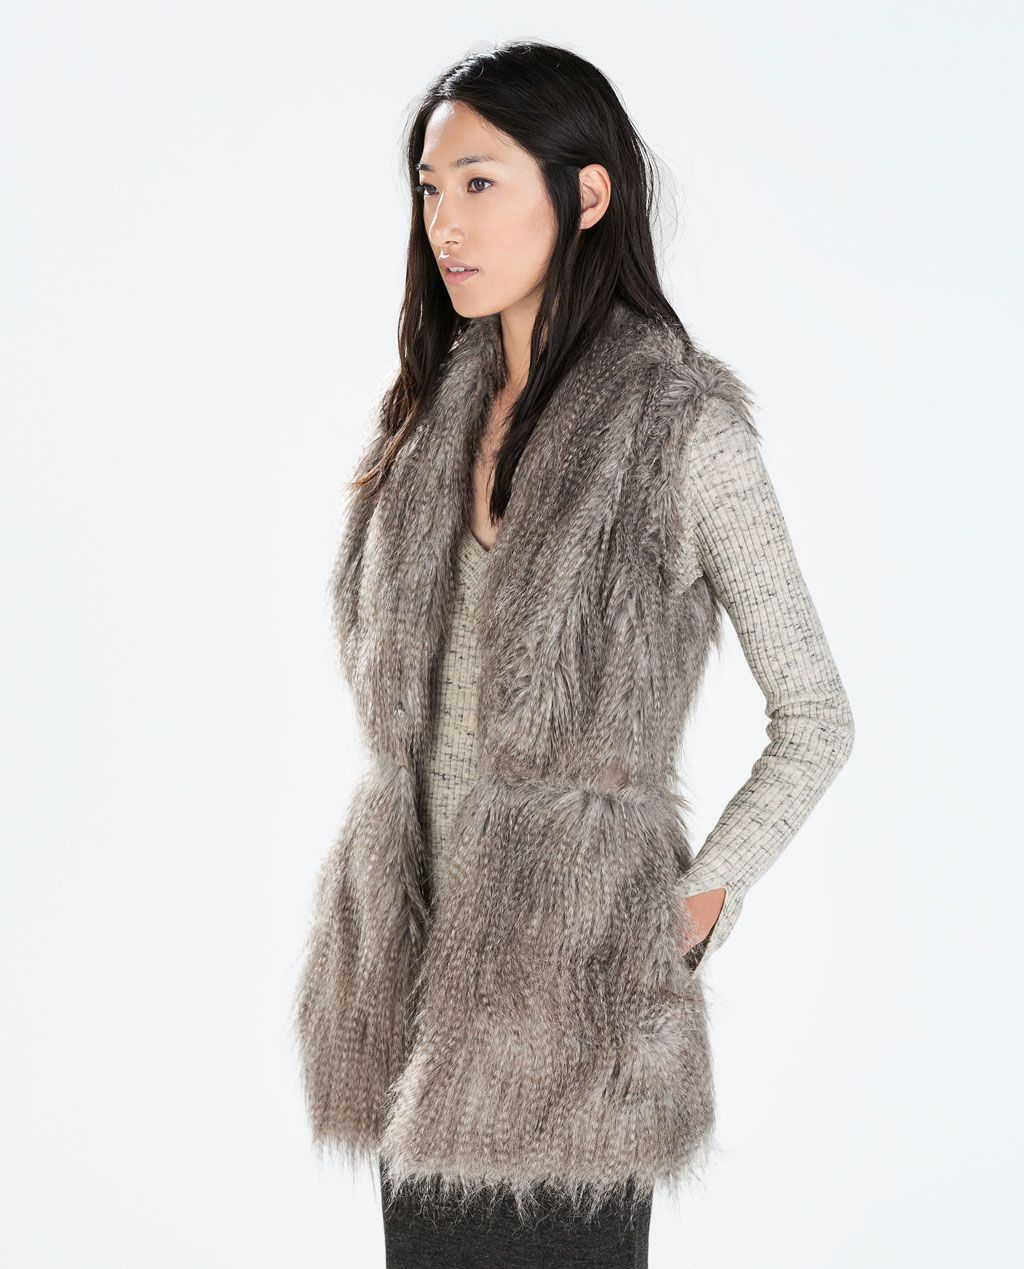 Waist Seam ZaraMy From Wish Style Fur Vest With And HavesWant FK1TclJ